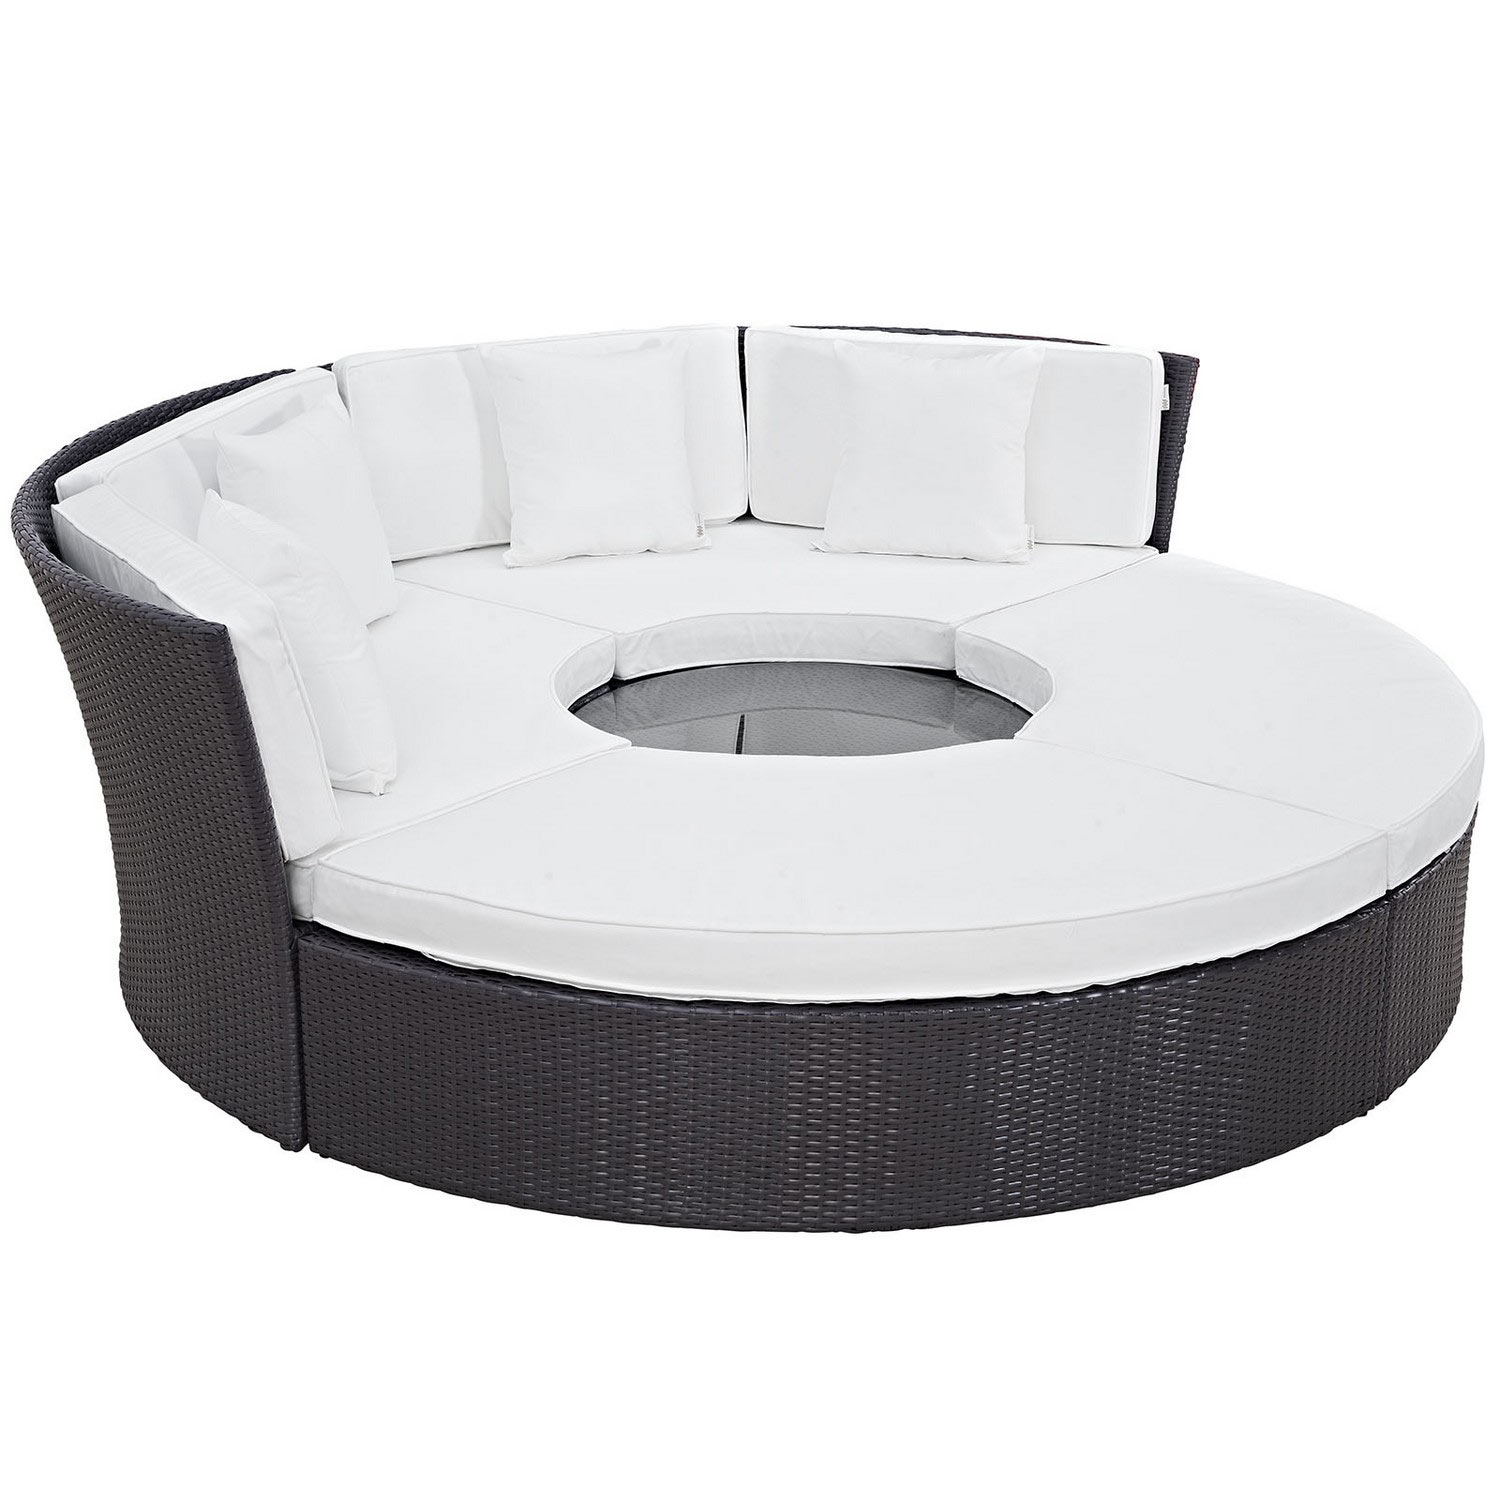 Modway Convene Circular Outdoor Patio Daybed Set - Espresso White